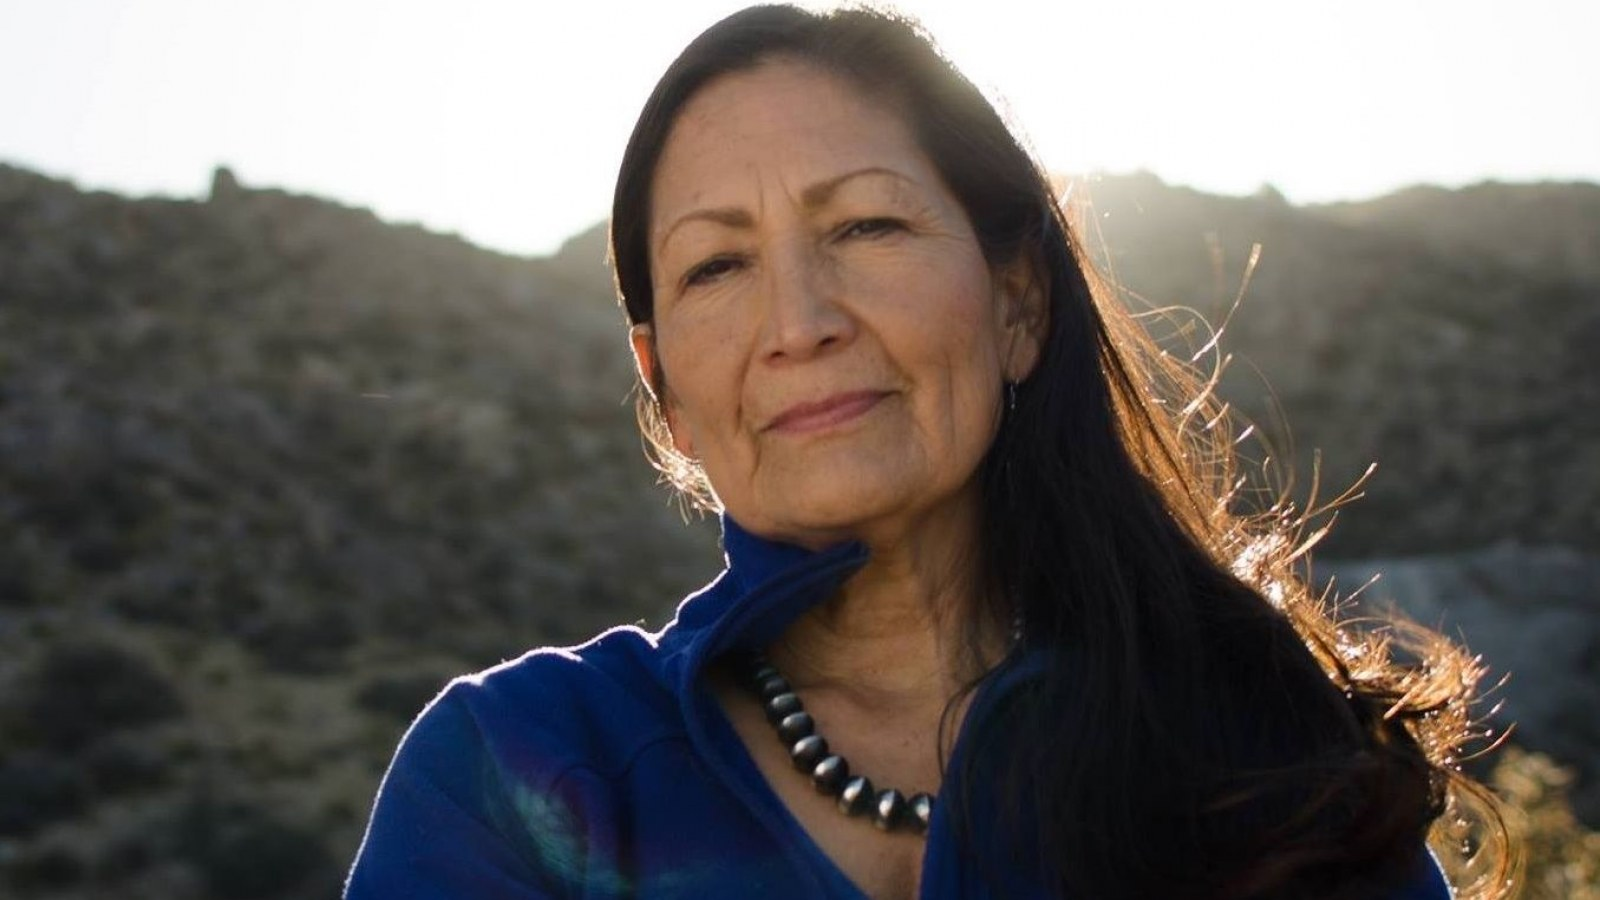 Who Is Deb Haaland New Mexico Democrat And Ice Abolitionist May Become First Native American Congresswoman